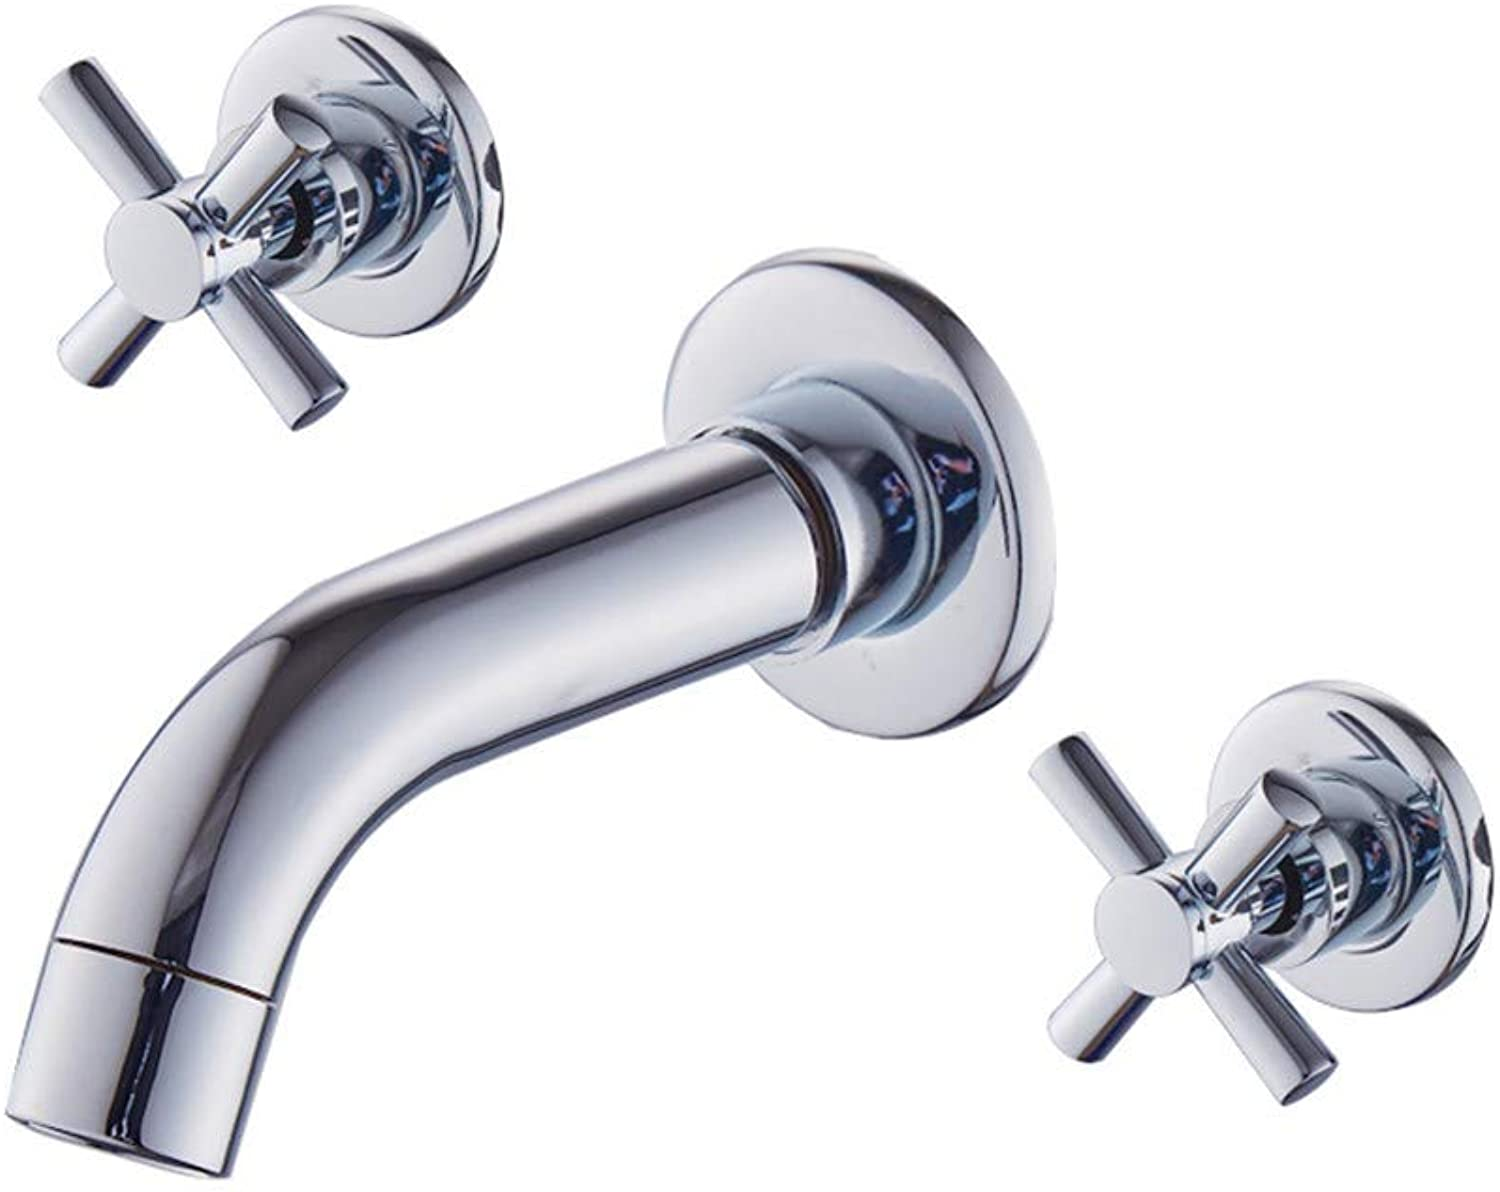 Zhcmy?Faucet Wall-Mounted Bathroom Cabinet Basin Faucet Double Three-Hole Concealed Split Hot And Cold Wash Basin Faucet